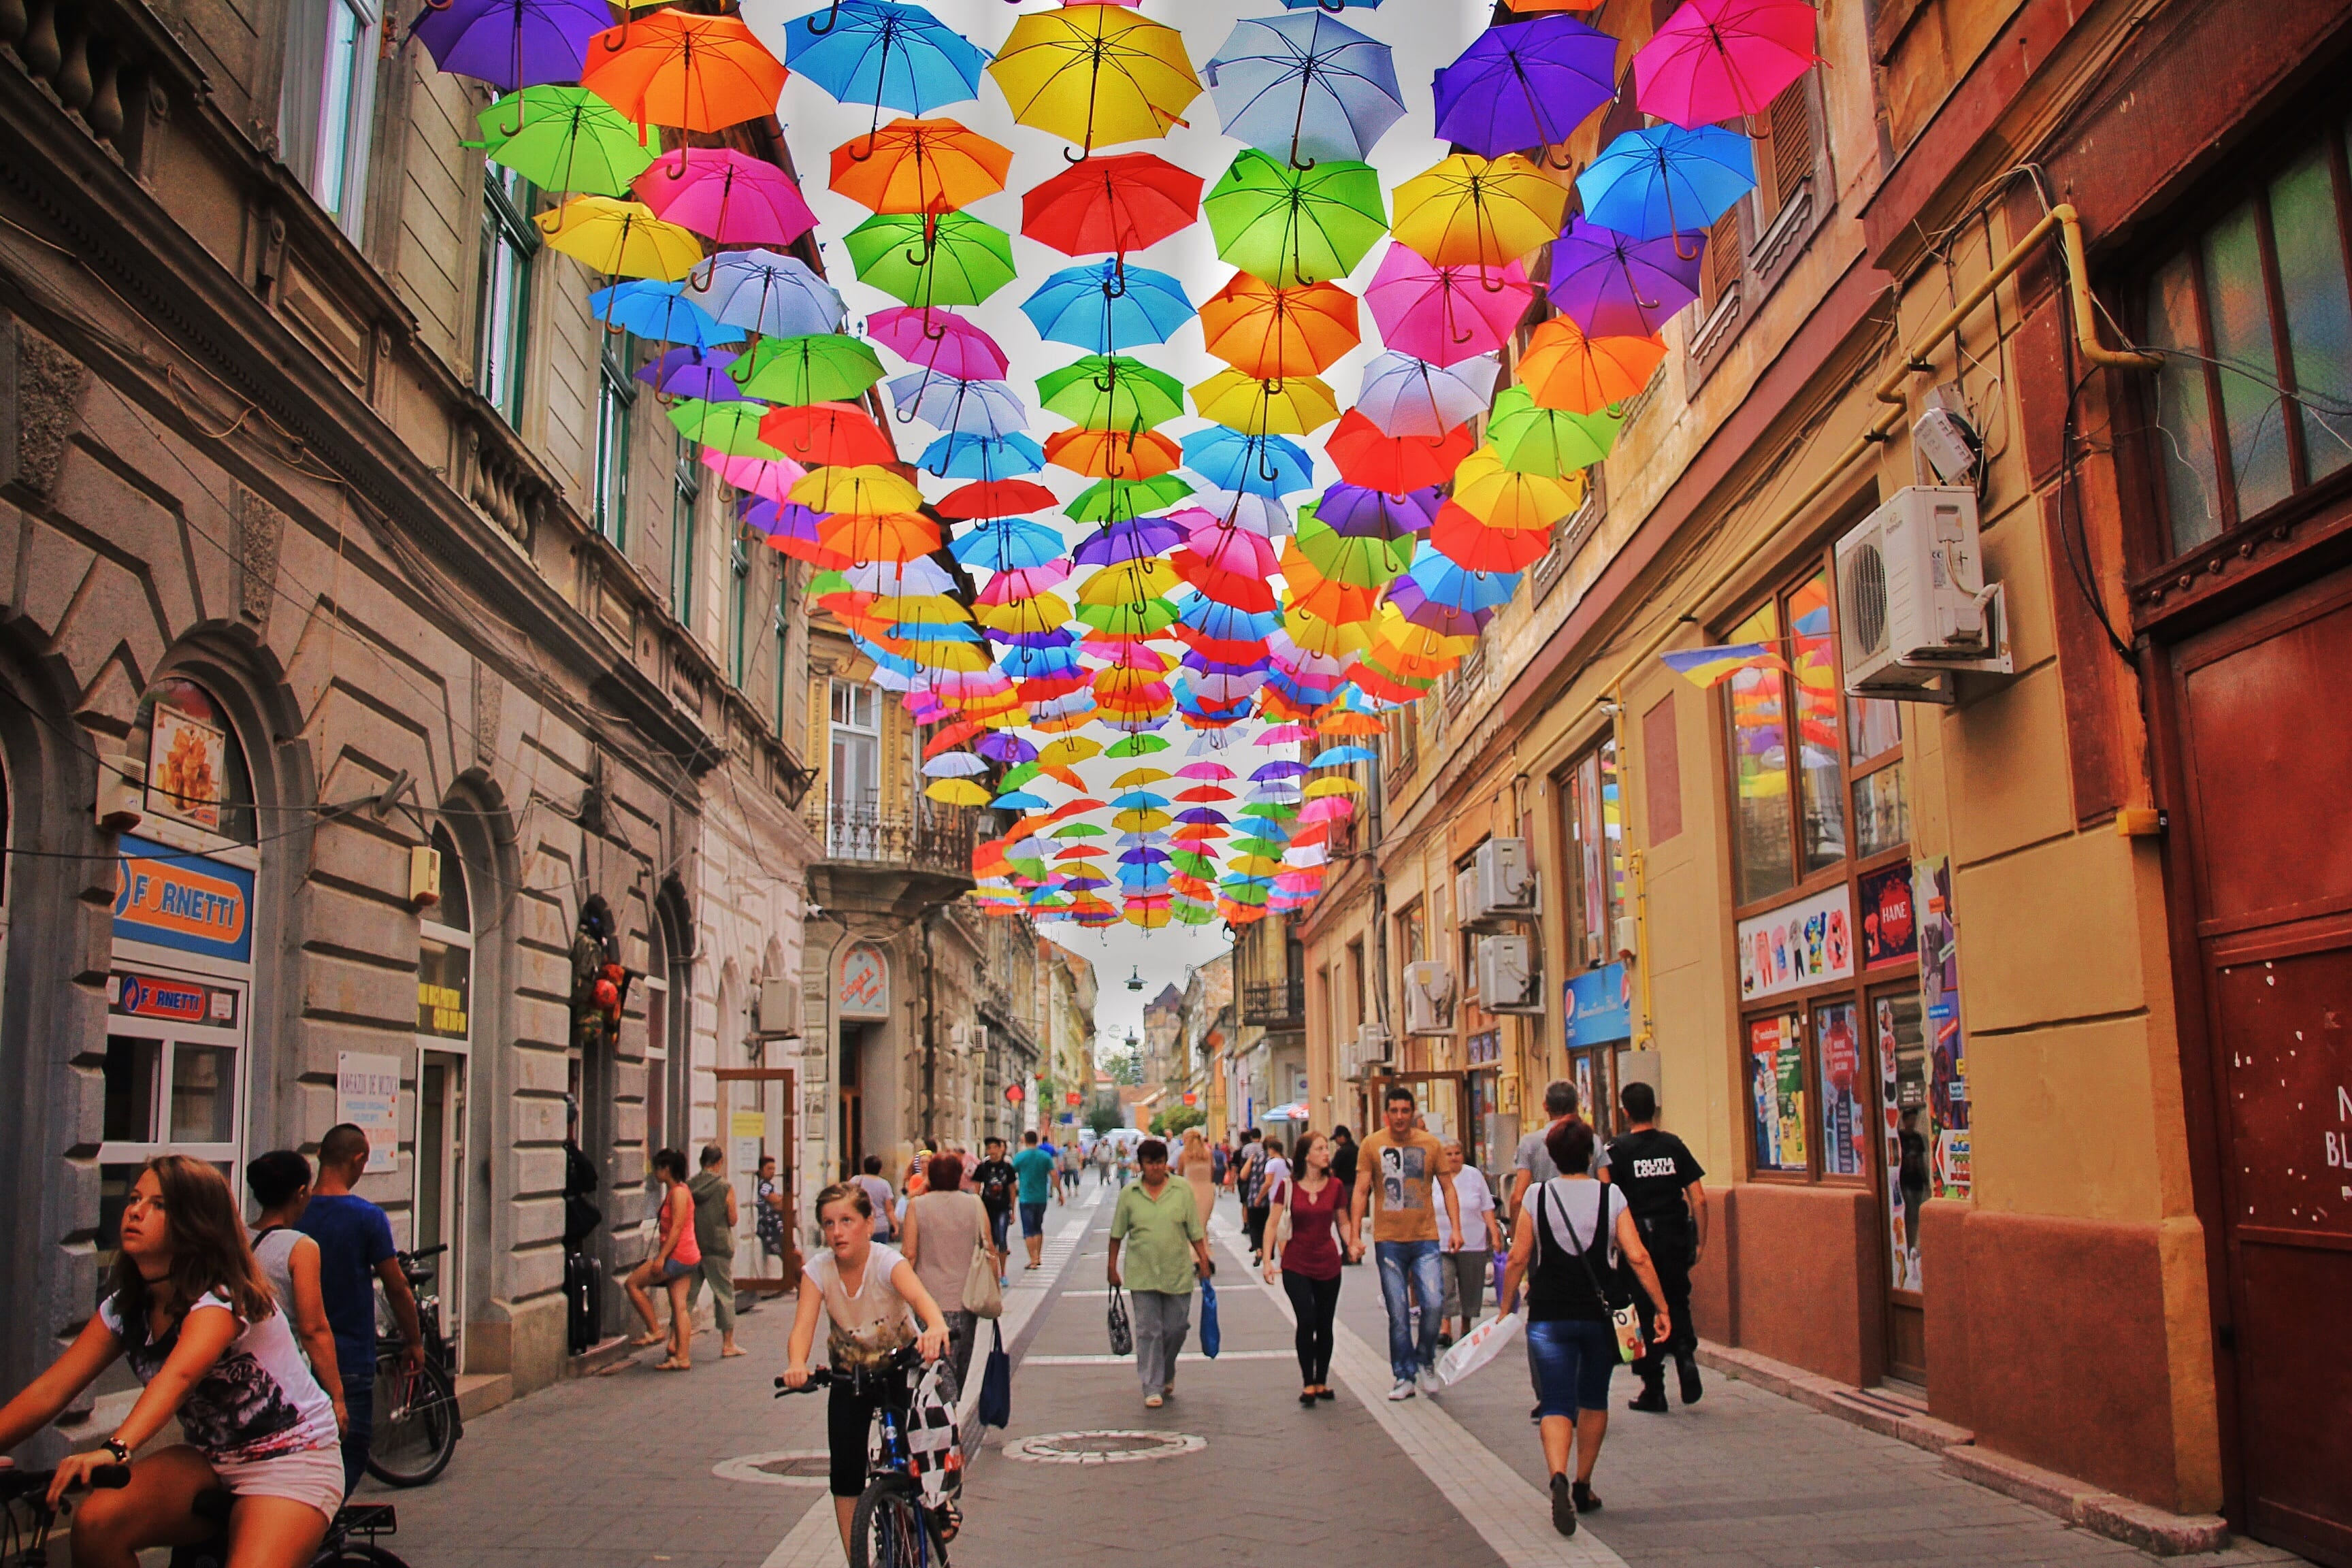 romania - colorful umbrellas above city street